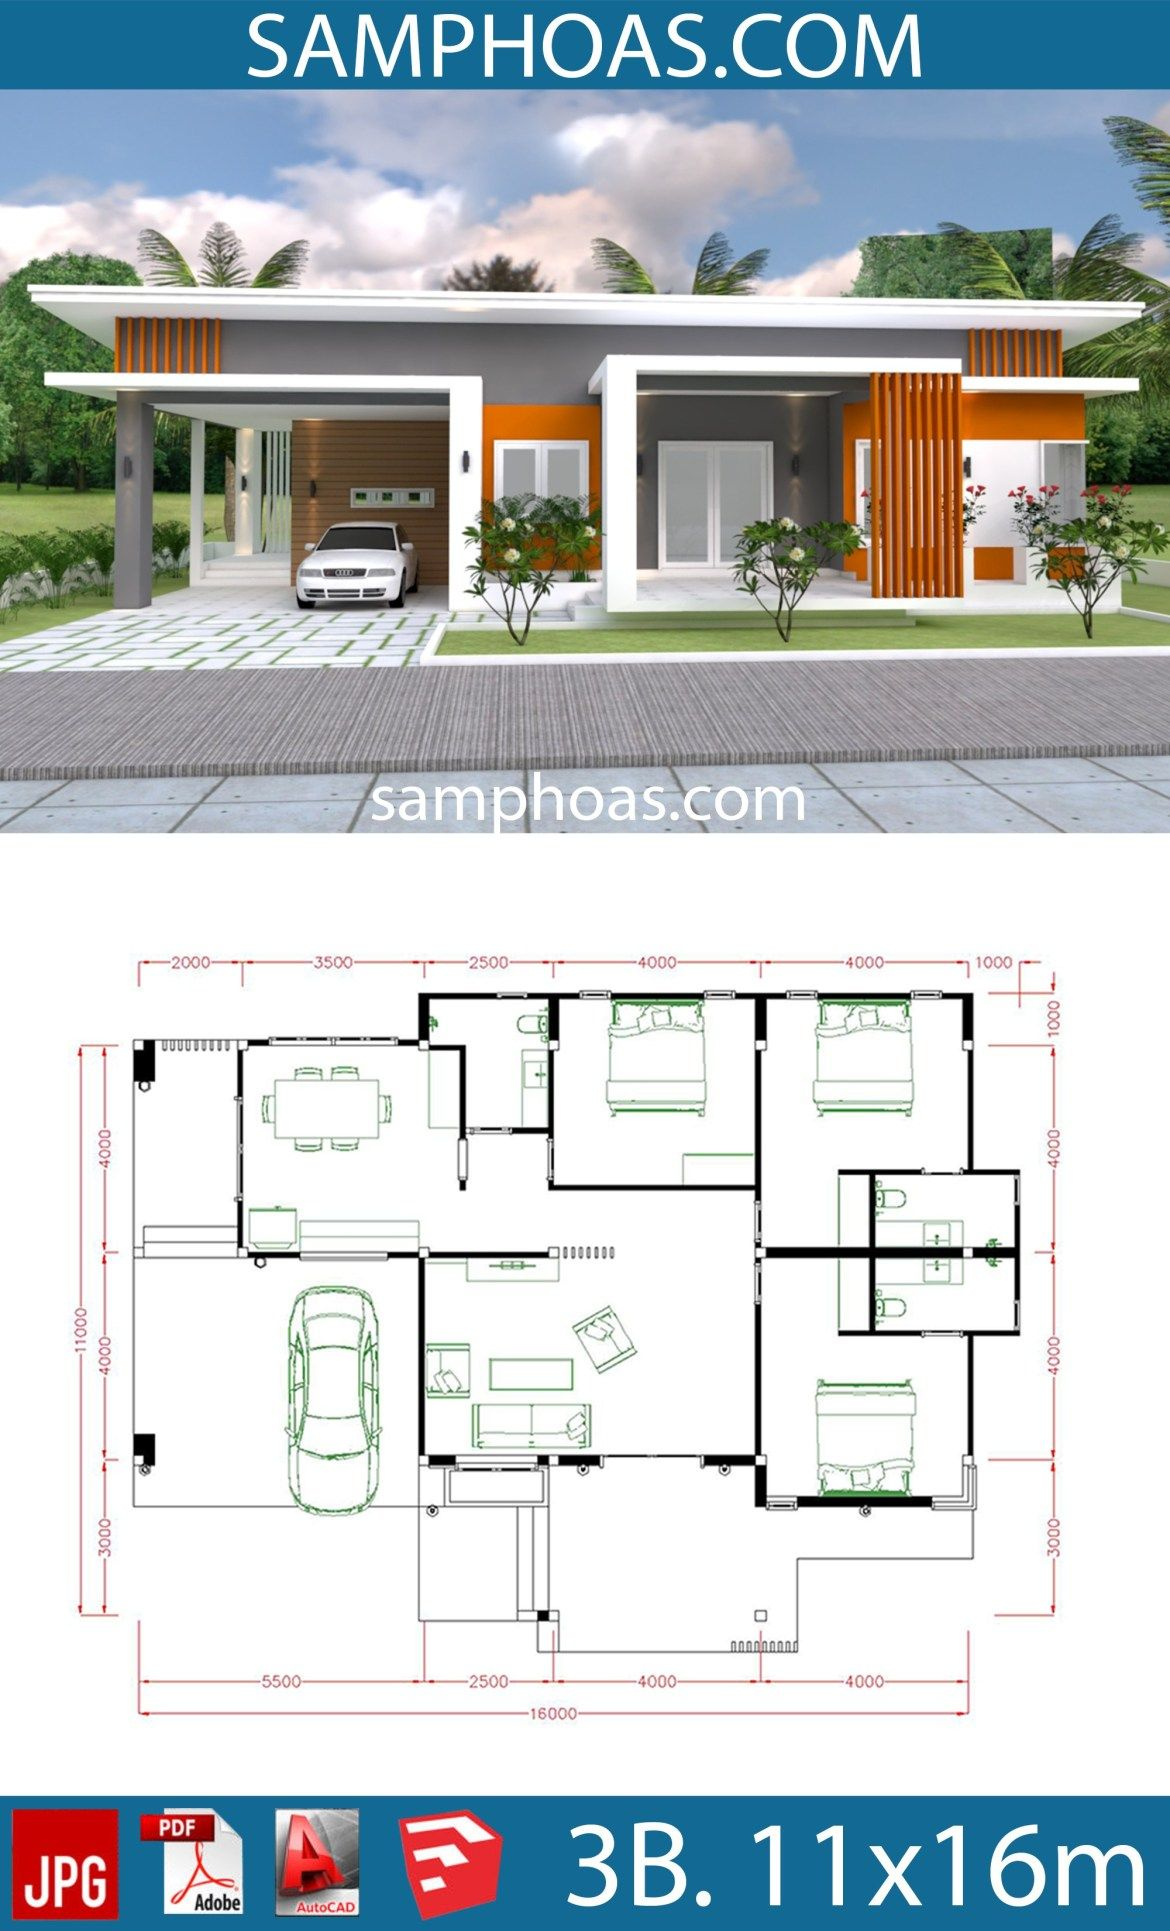 House Plan 11x16m With 3 Bedrooms Samphoas Plansearch Beautiful House Plans Modern Bungalow House House Plan Gallery